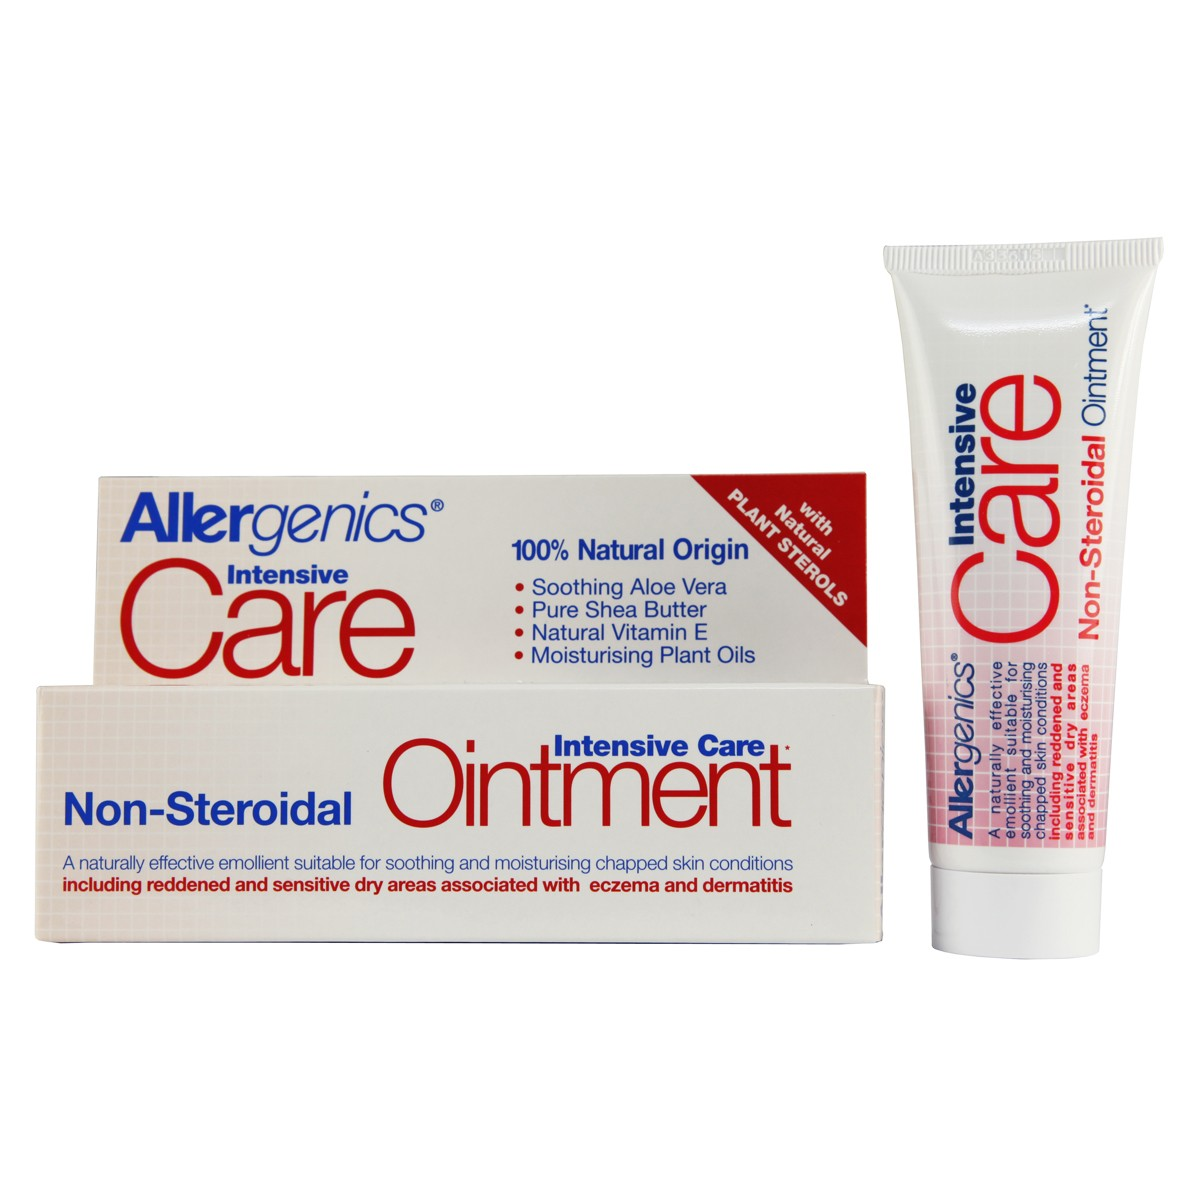 Allergenics Intensive Care Ointment